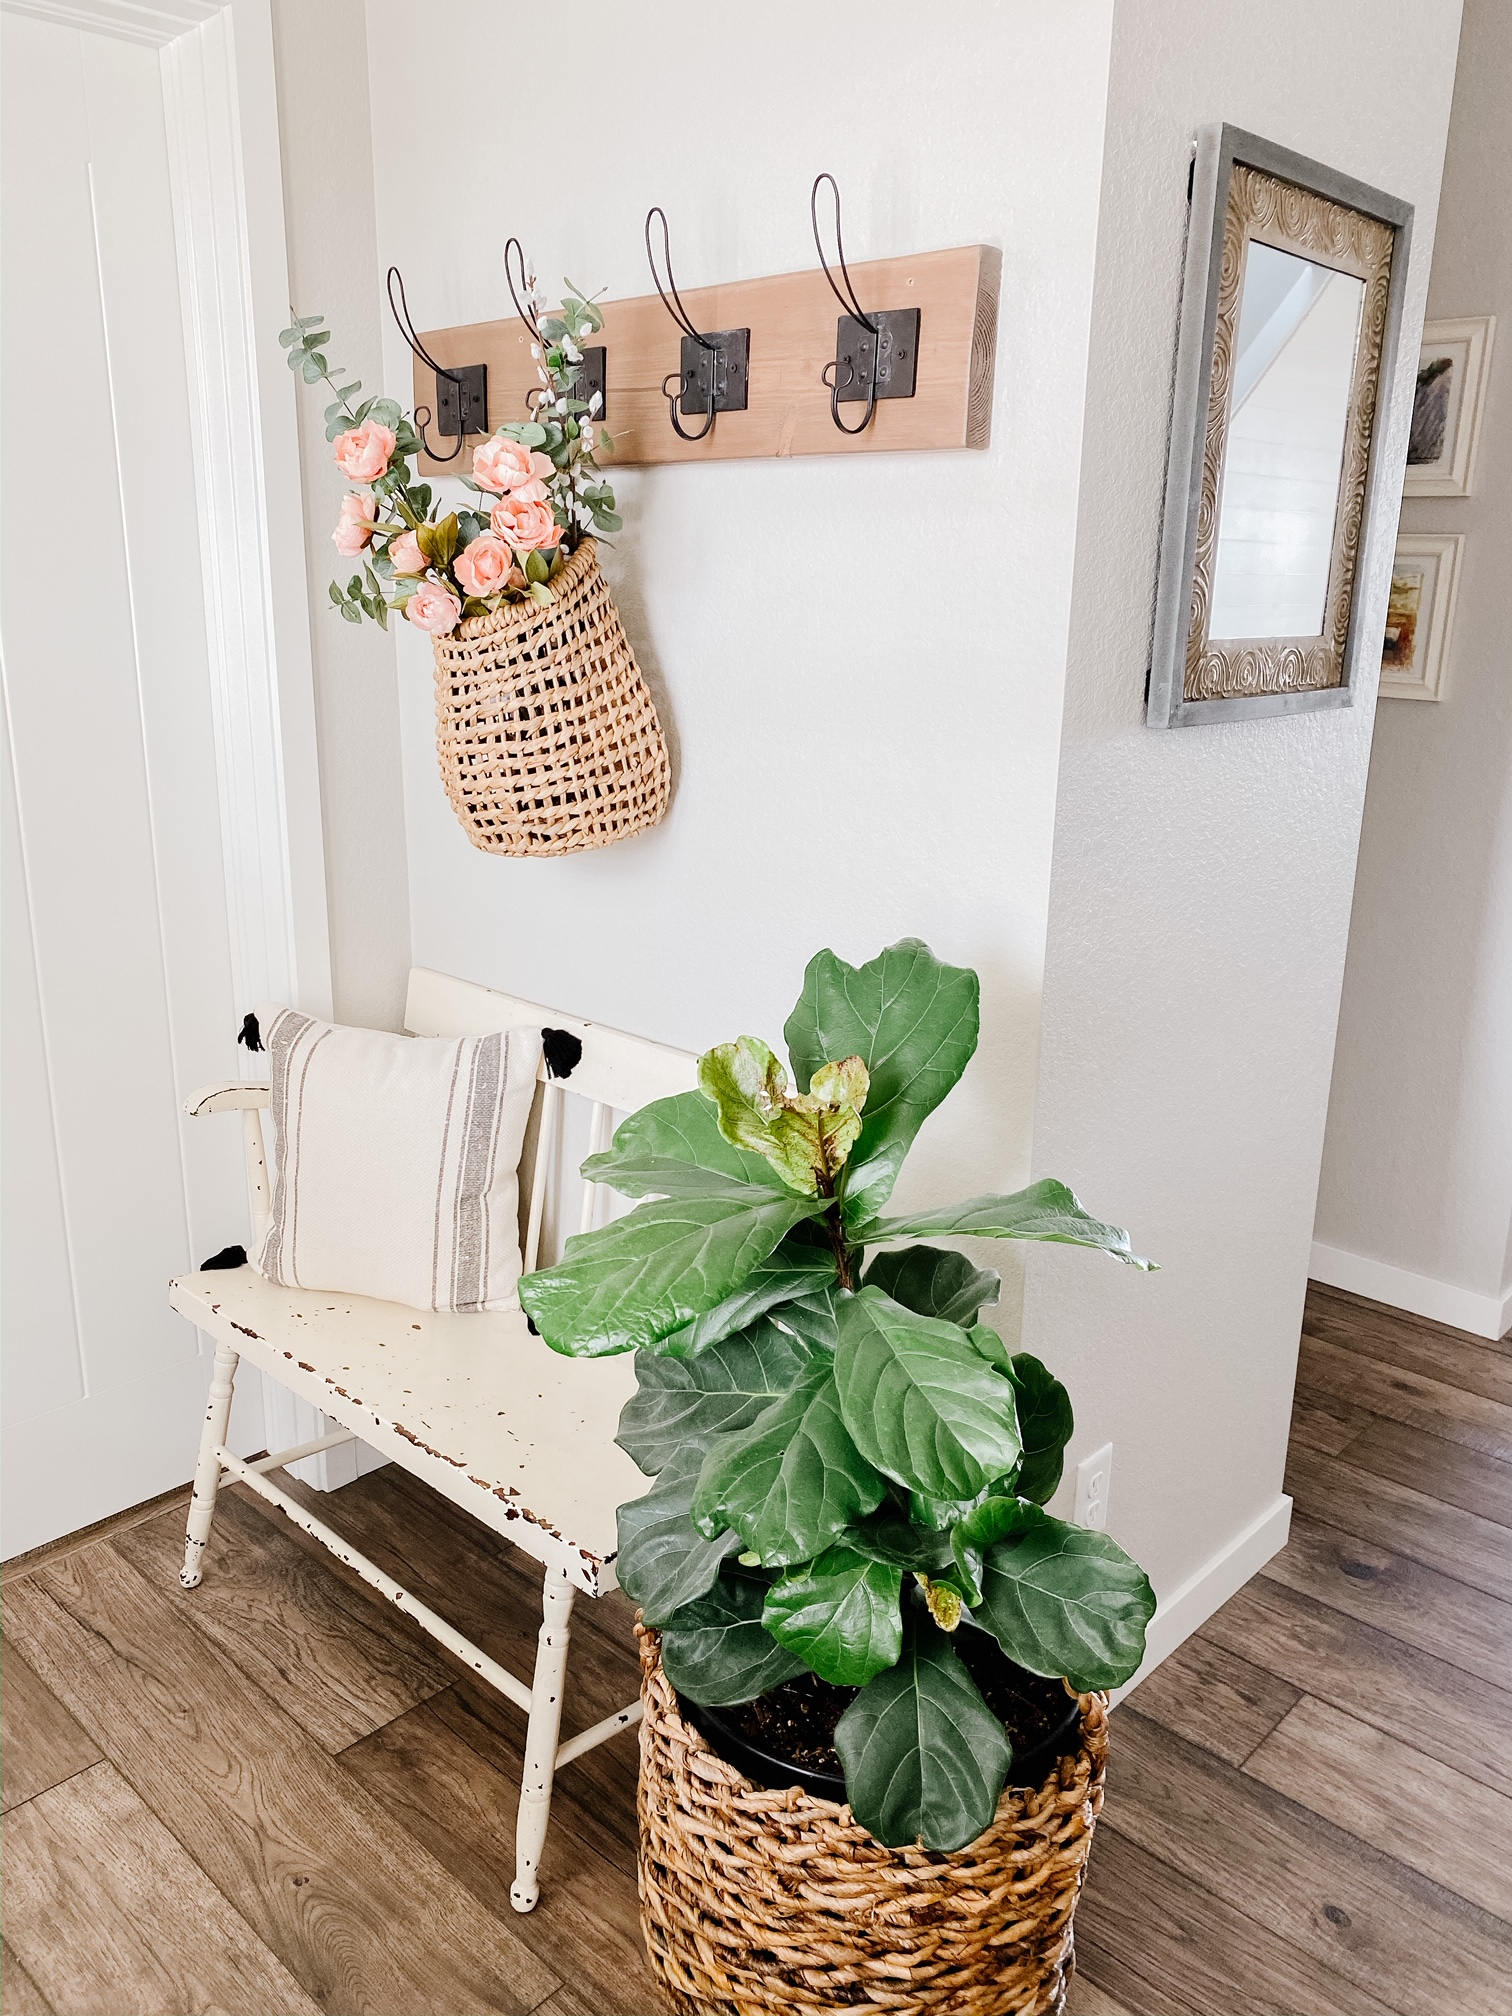 Faux Spring Florals In a hanging basket can add the perfect touch of spring to a coat rack or front door!